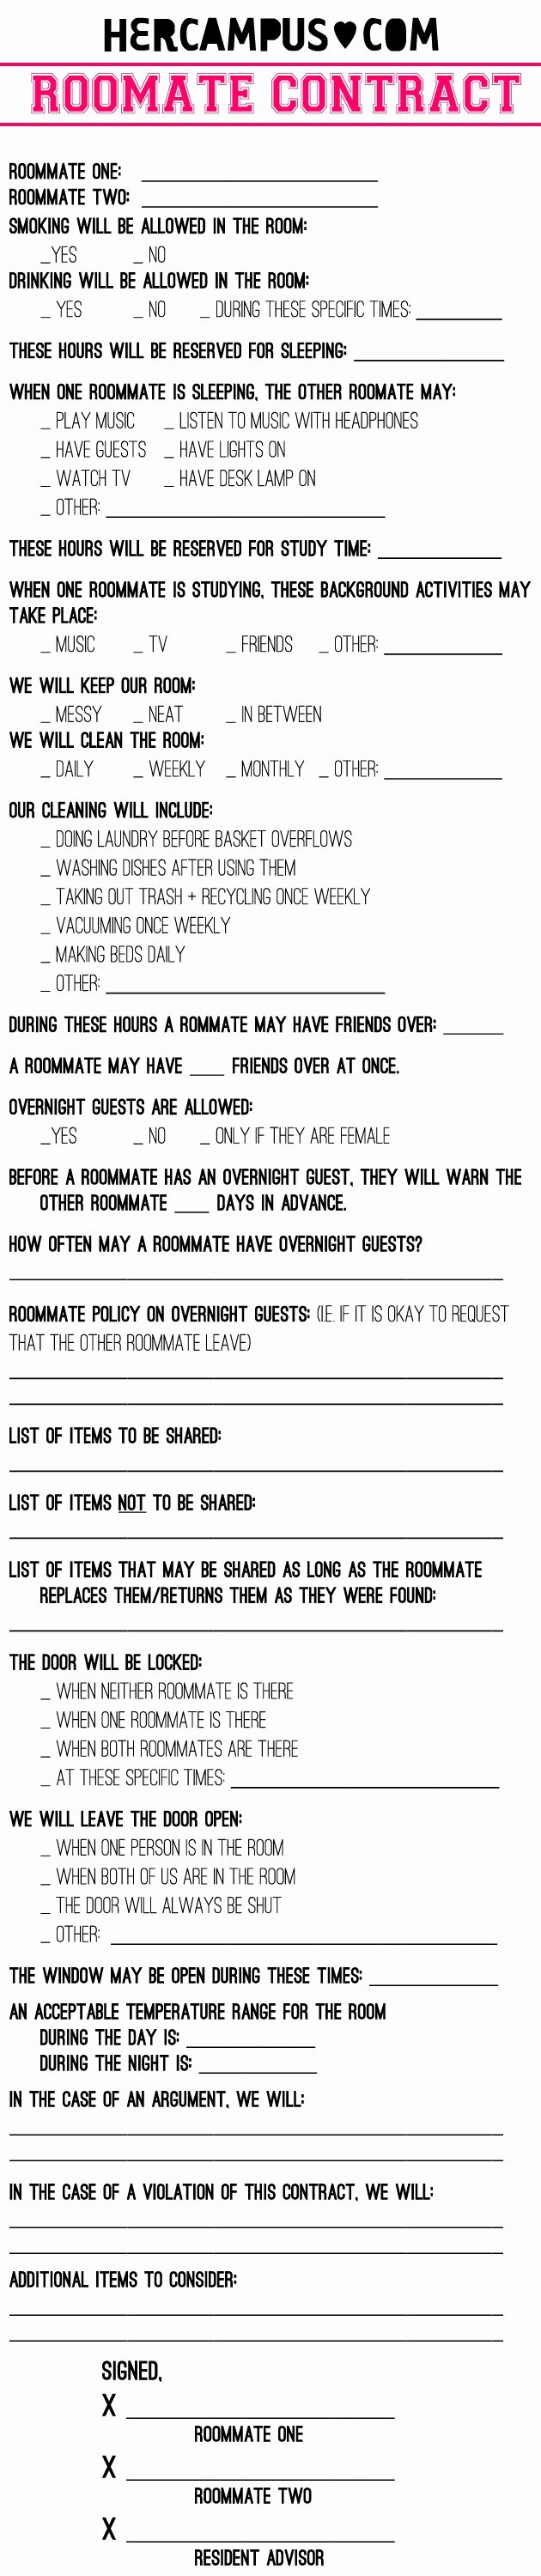 College Roommate Agreement Template Unique Roommate Agreements